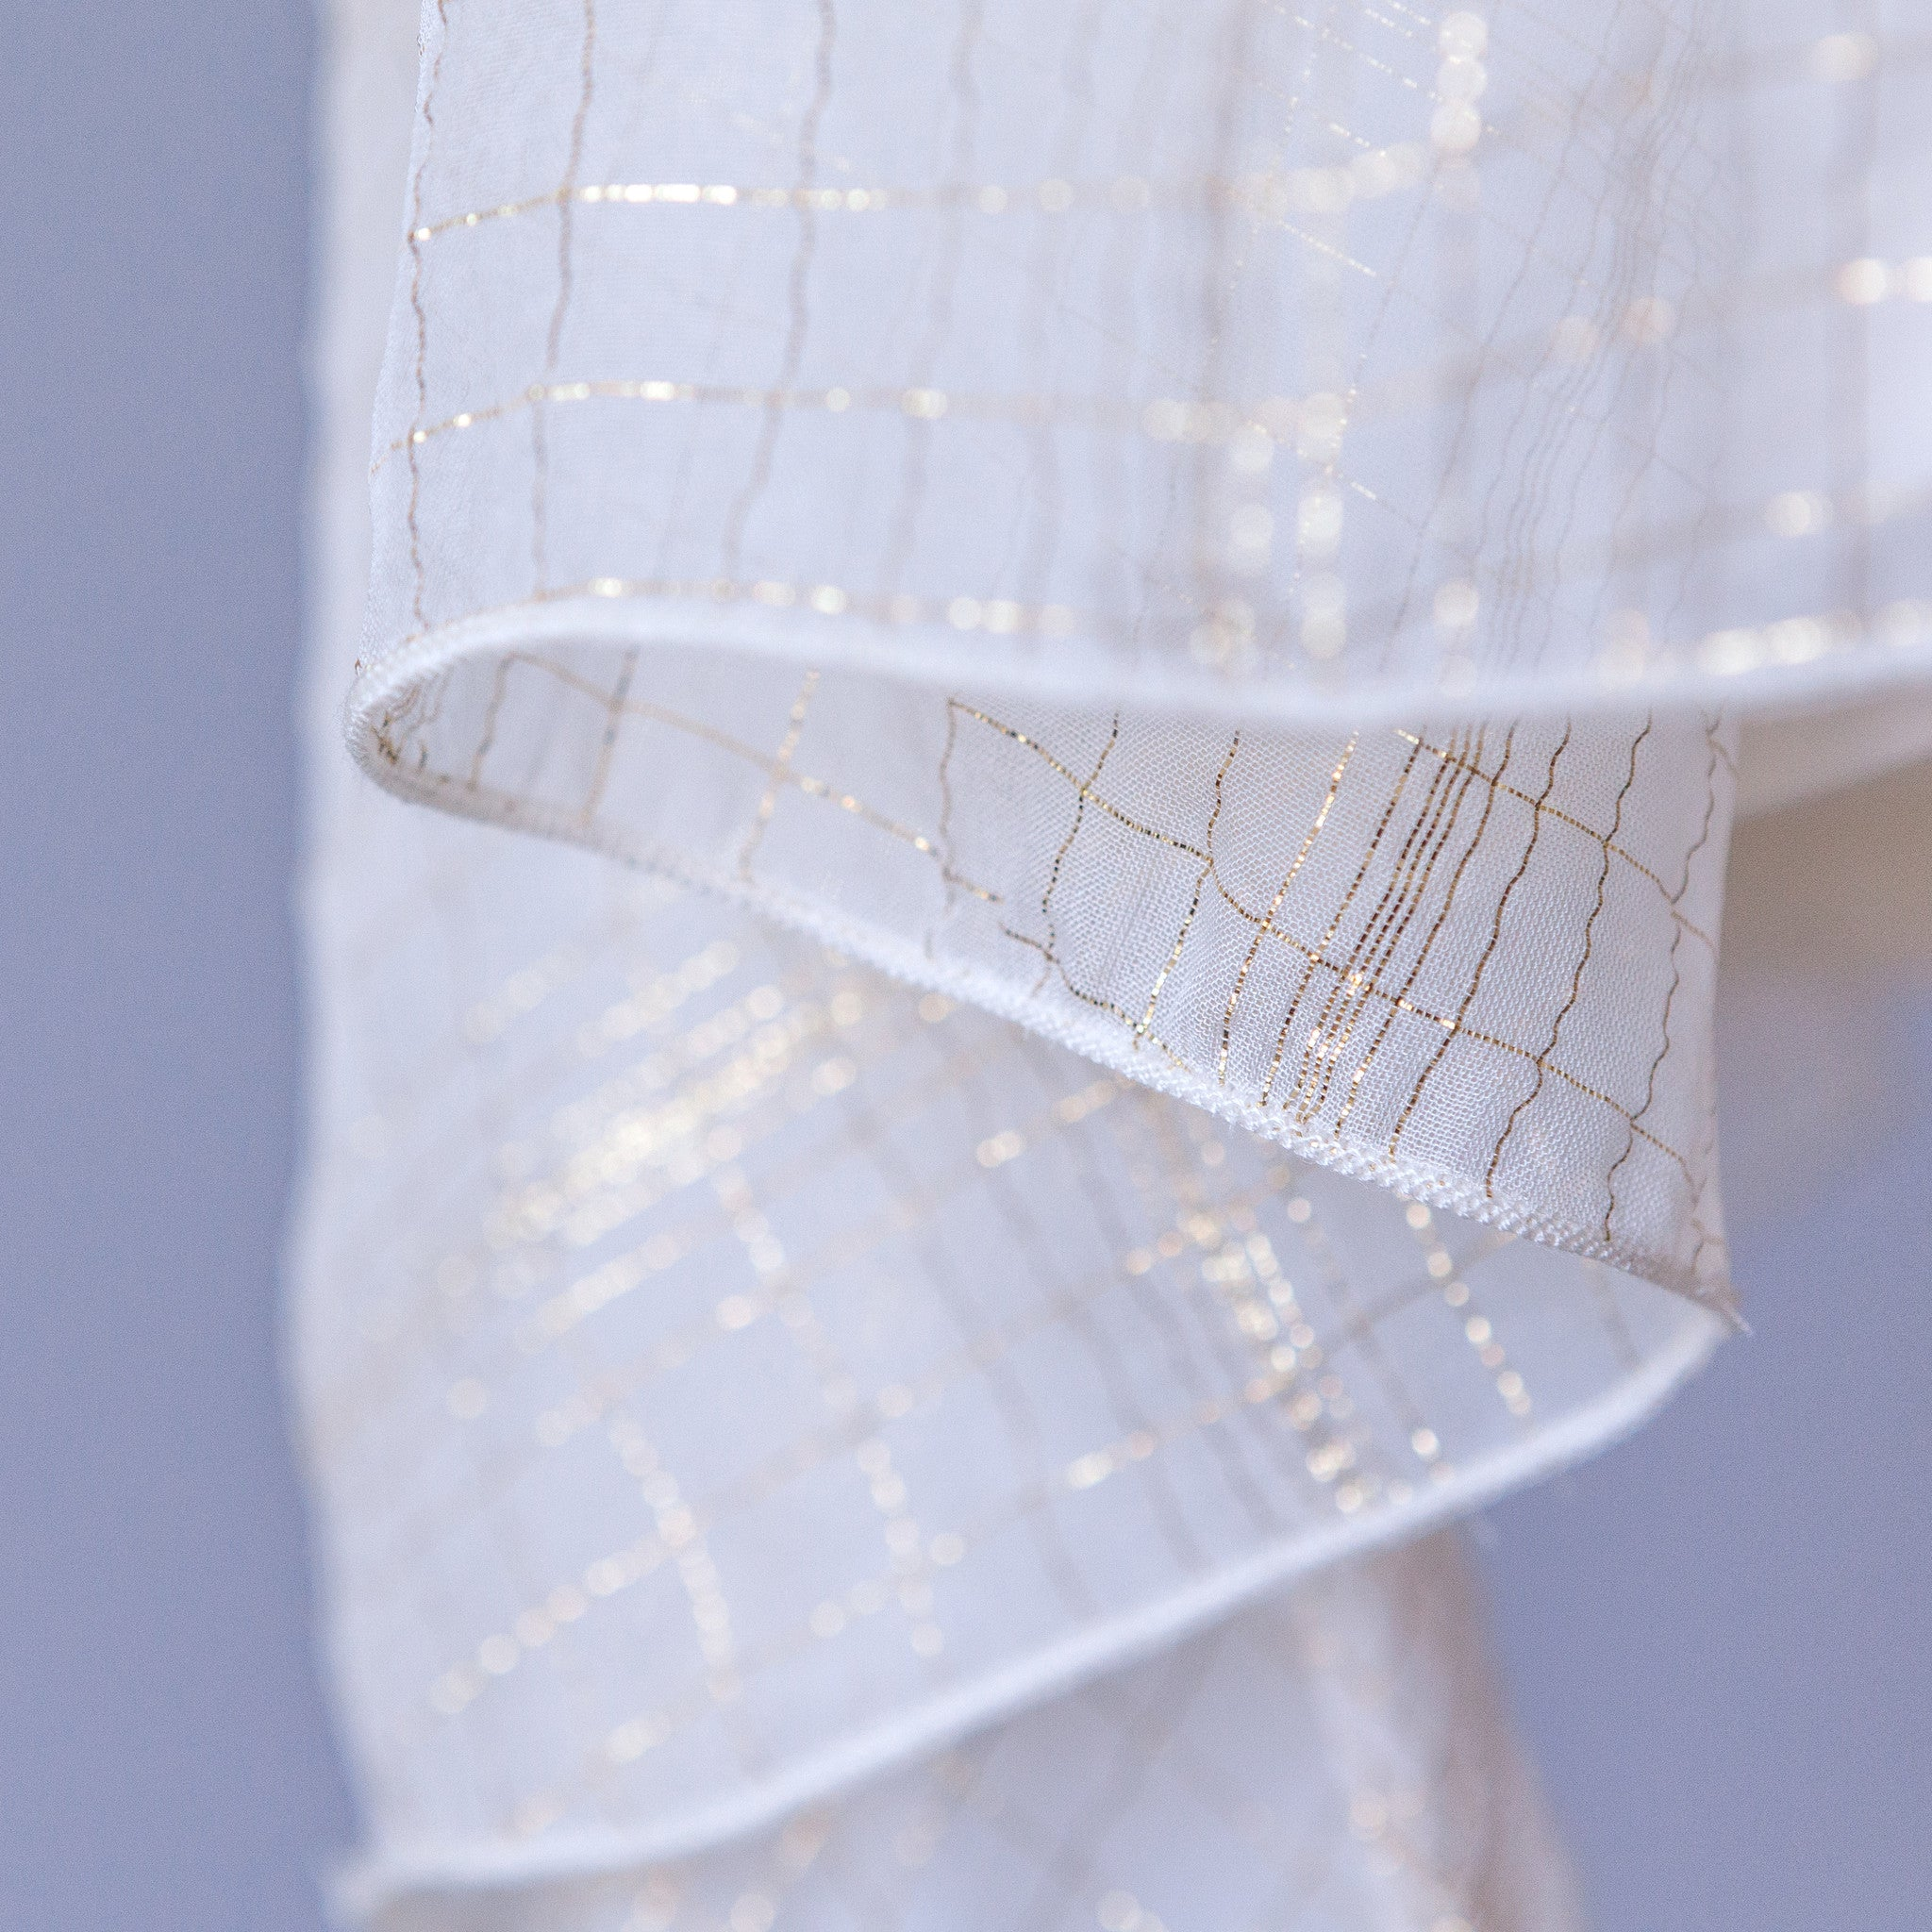 Pretty Special - Rare Edition White Silk Chiffon with Gold Lurex (Final Sale) (Size 10Y Only)